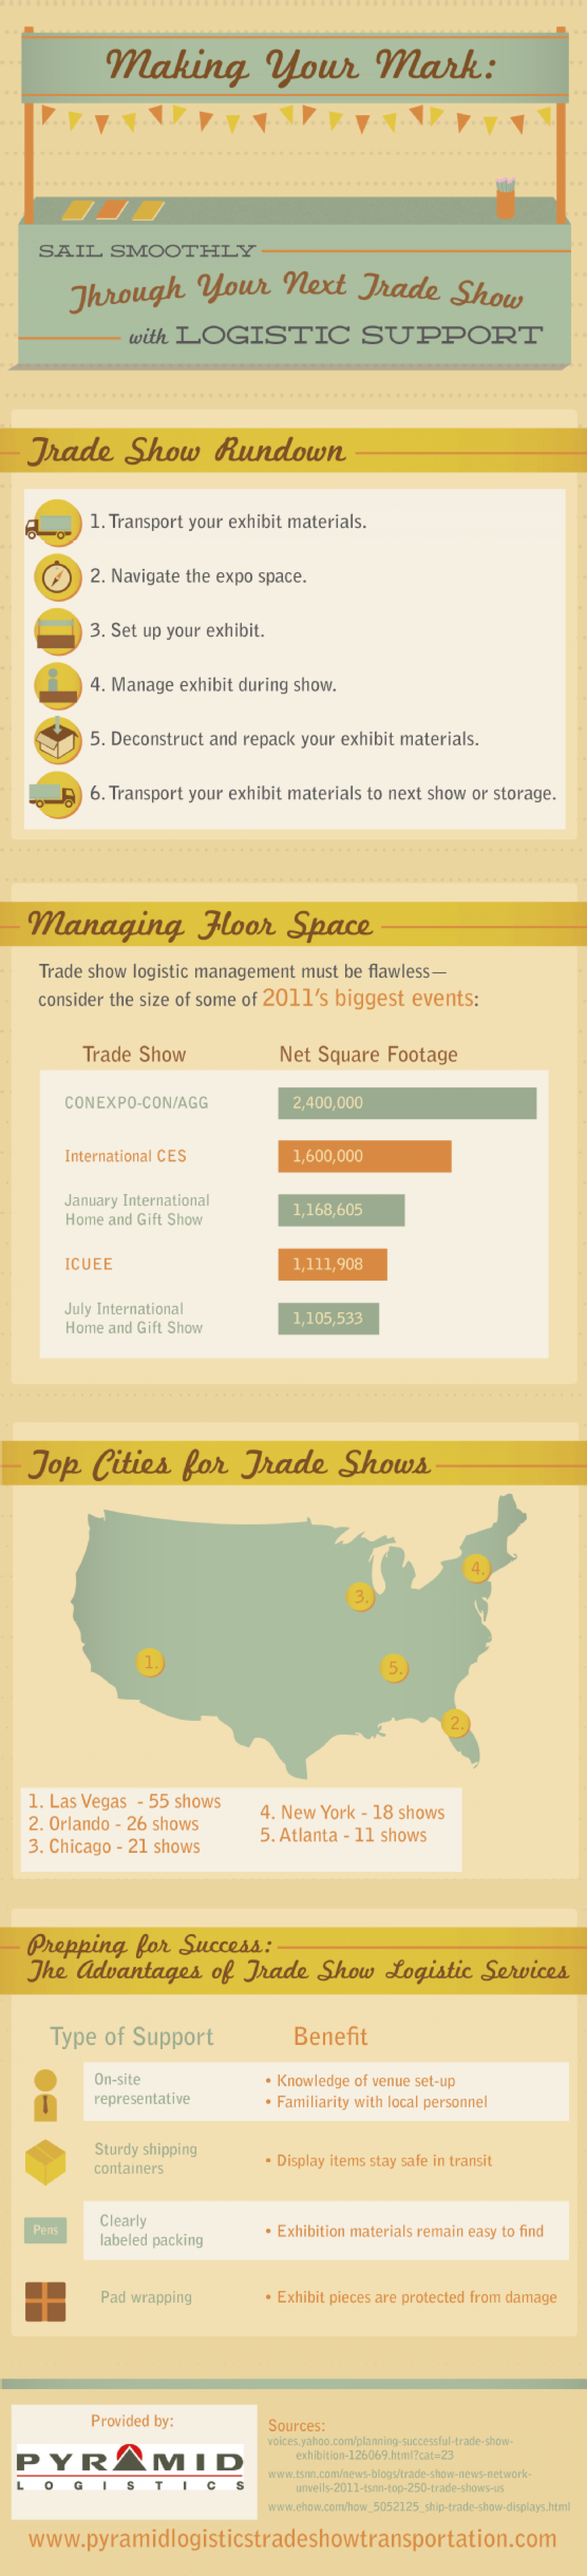 Making Your Mark: Sail Smoothly Through Your Next Trade Show with Logistic Support Infographic